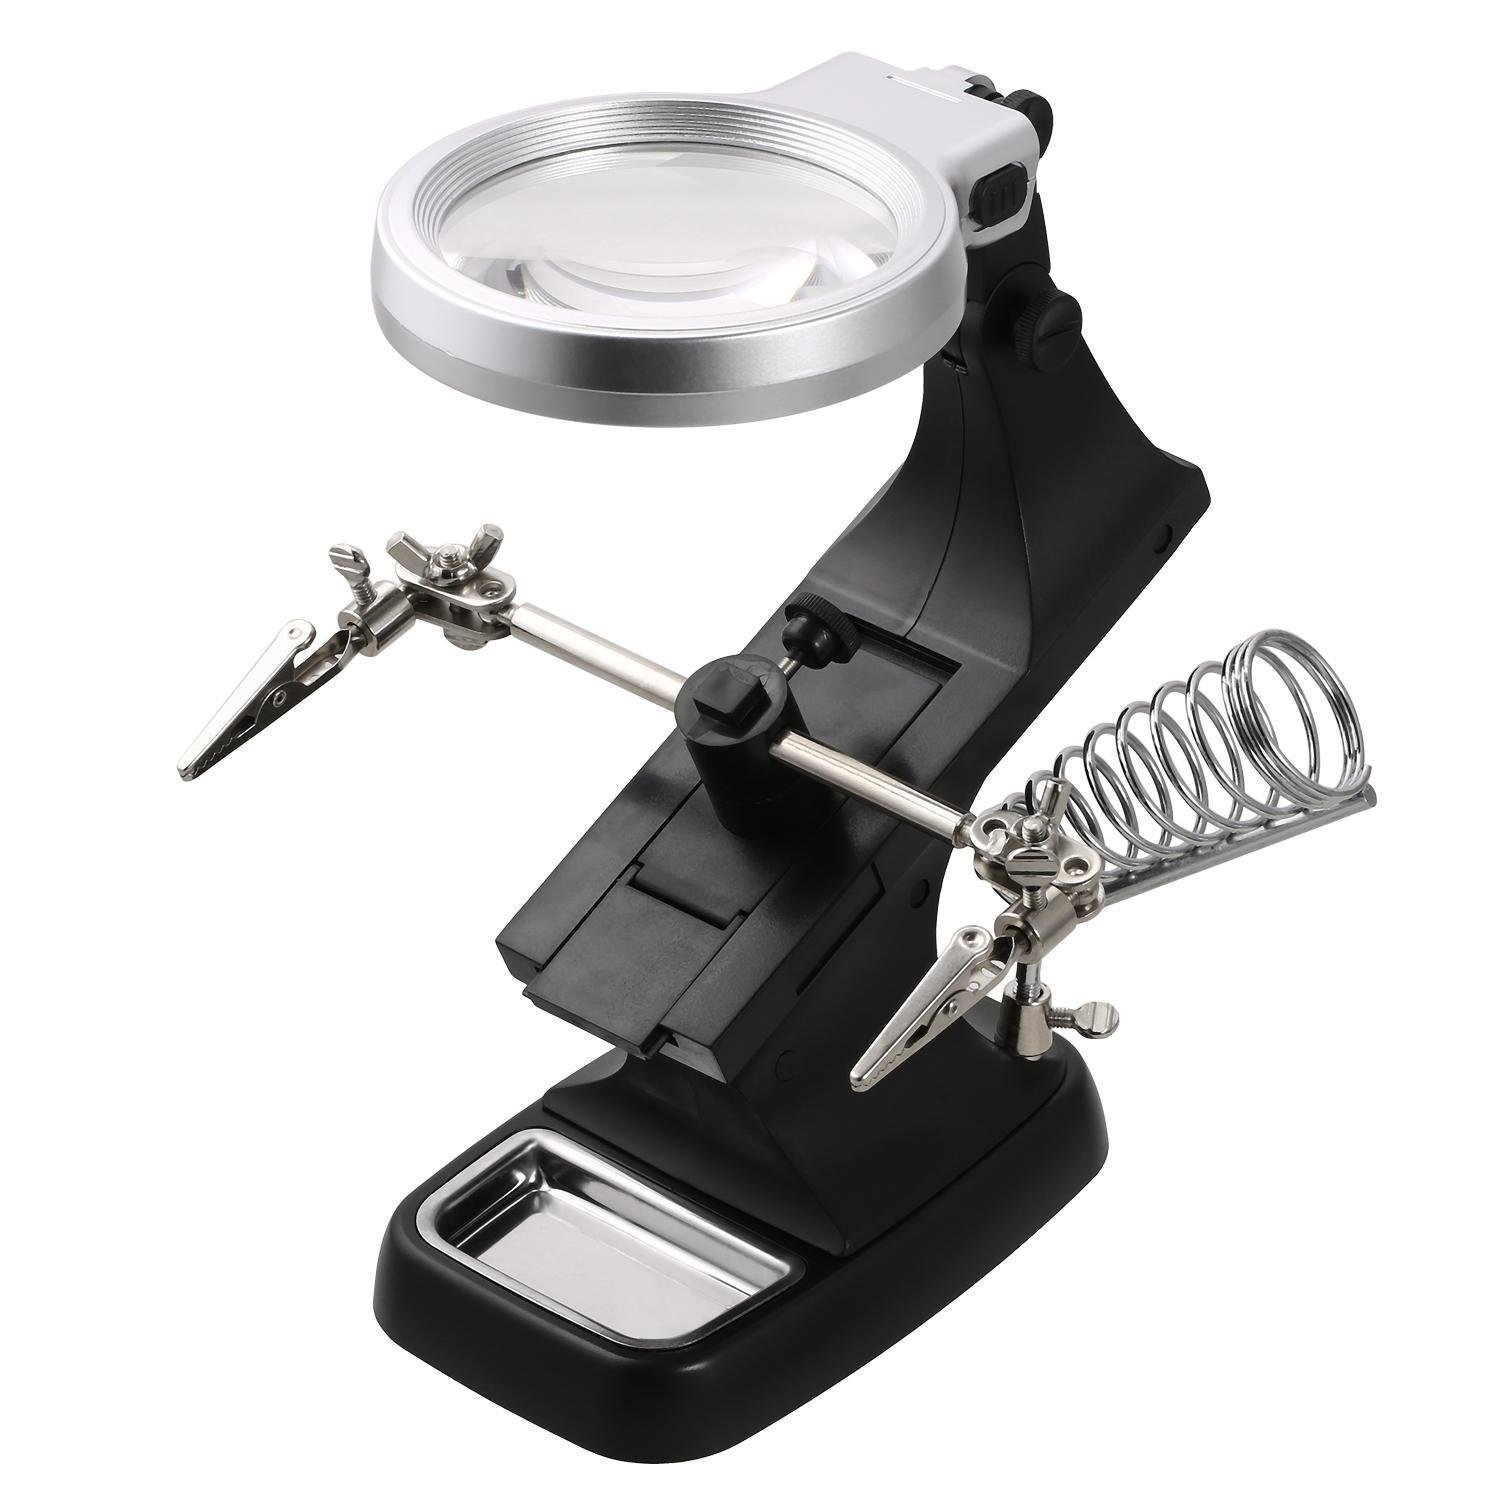 Kaluo 3 X 4.5X DeskTop Multifuncitional LED Light Magnifier Third Hand Workstation with Solder Holder Clamp and Alligator Clips for Workshop, Hand Soldering Help Repair Welding Hobby and Craft (Black)